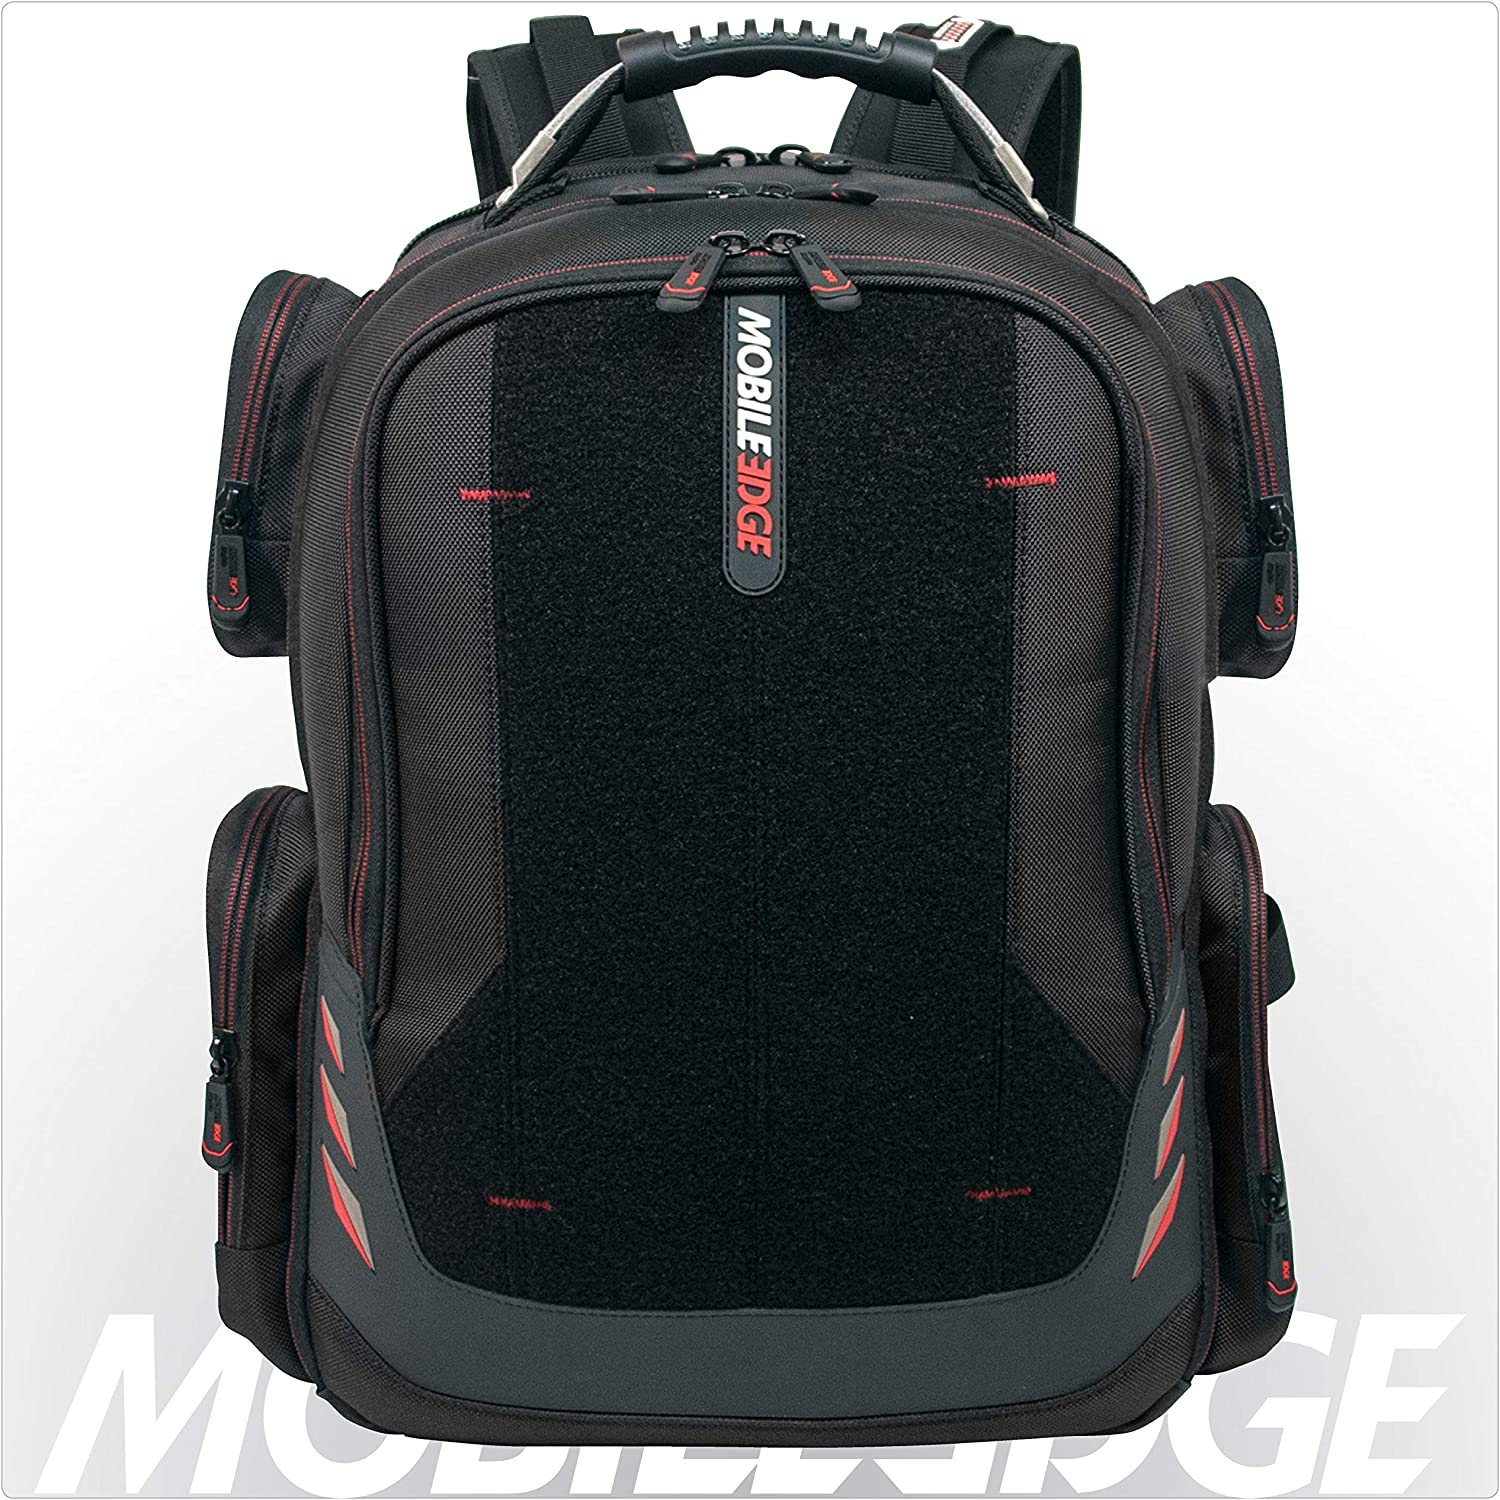 Core Gaming Laptop Backpack From Mobile Edge Core Gaming, 17.3 Inch, External USB 3.0 Quick-Charge Port w/Built-in Charging Cable, Patch Panel - Black w/Red Trim - MECGBPV1